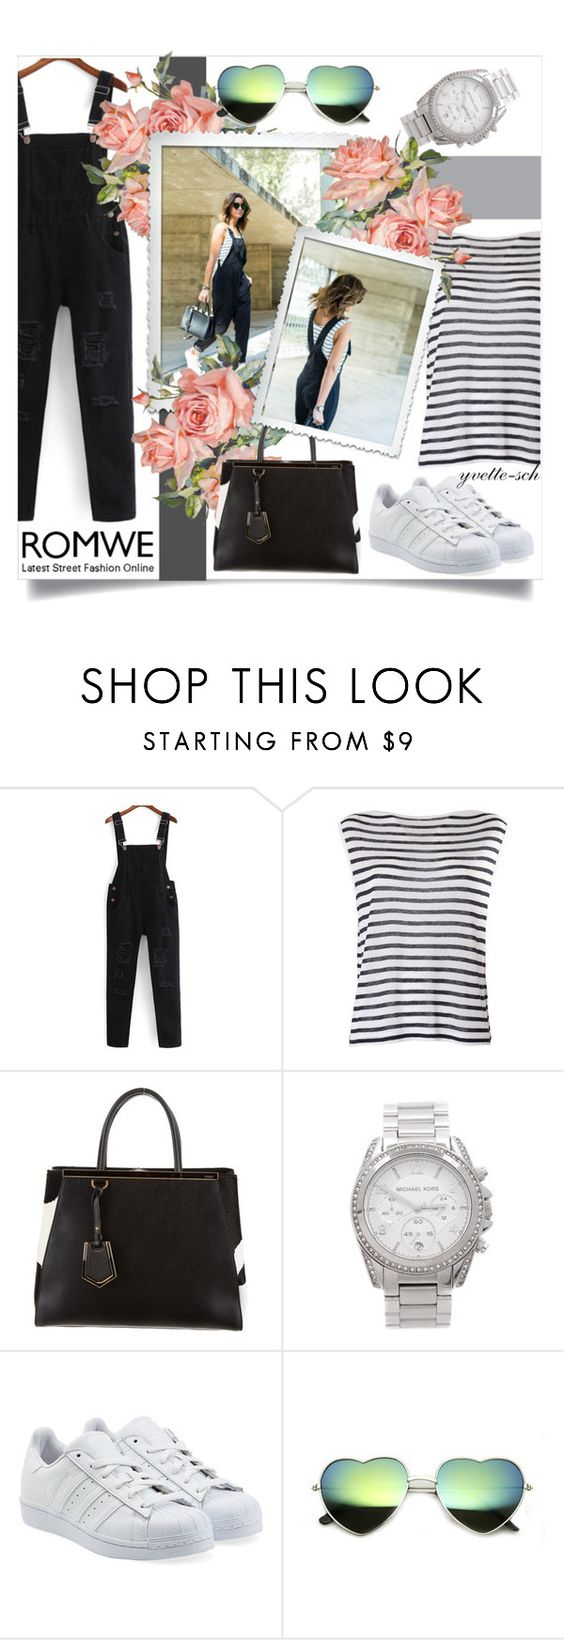 """""""Jumpsuit Time"""" by yvette-sch ❤ liked on Polyvore featuring T By Alexander Wang, Fendi, Michael Kors and adidas Originals"""